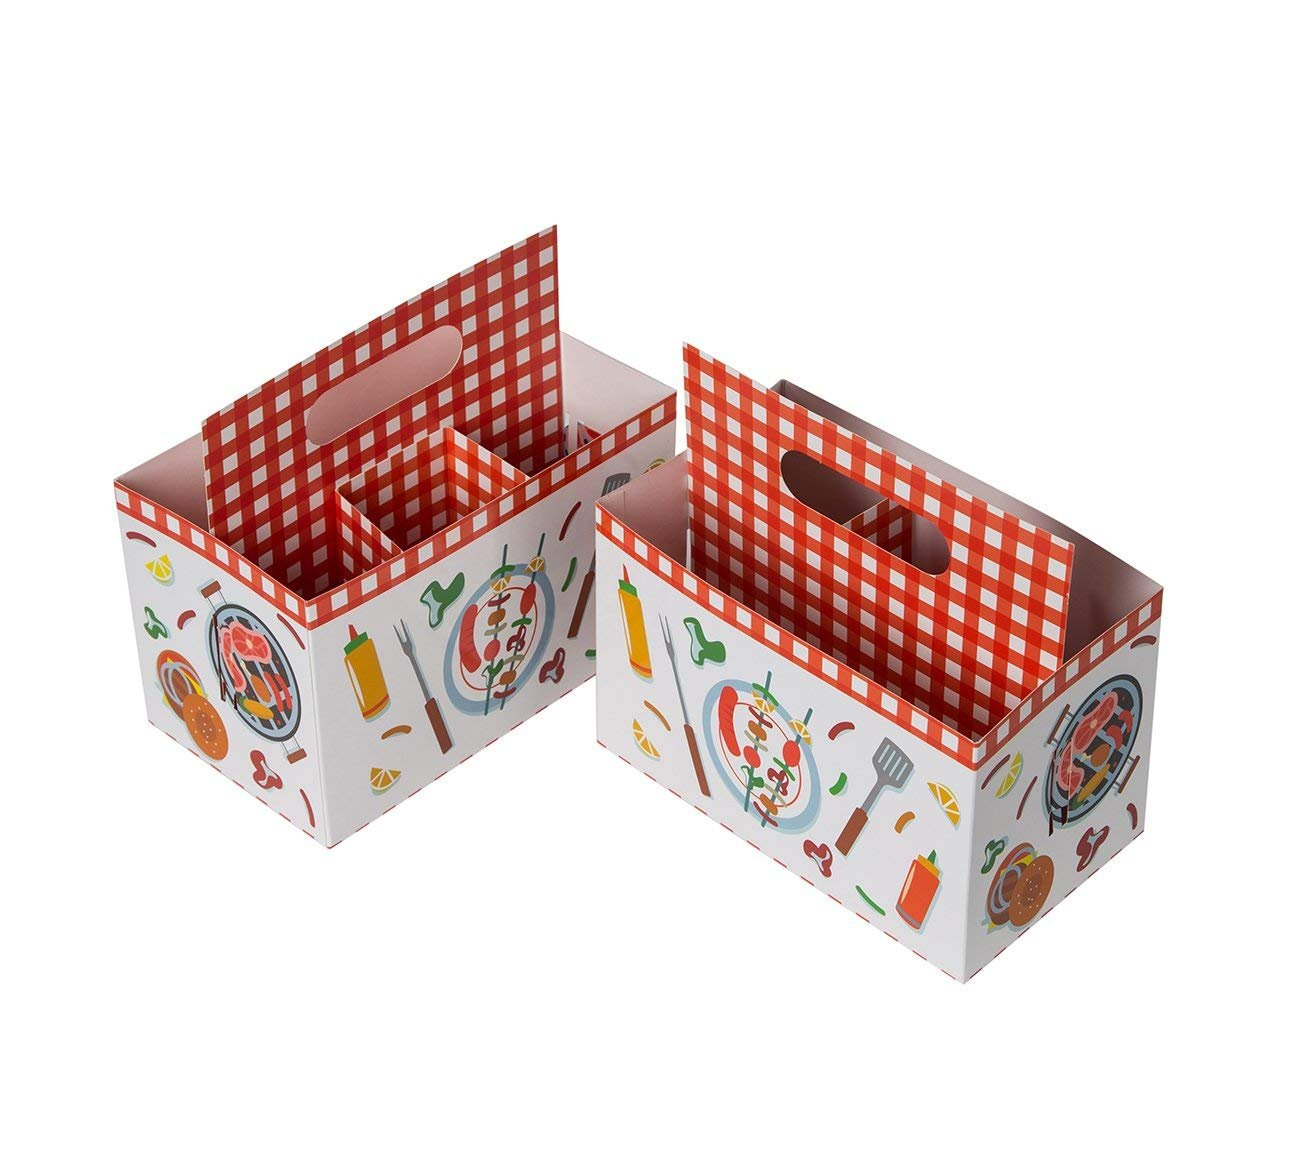 Holiday Paper 7.7 x 7.2 x 4.5 Inches 6-Pack Multi-Purpose Silverware Cutlery Caddy Organizer with BBQ Design for Birthday Party Utensil Holder Picnic